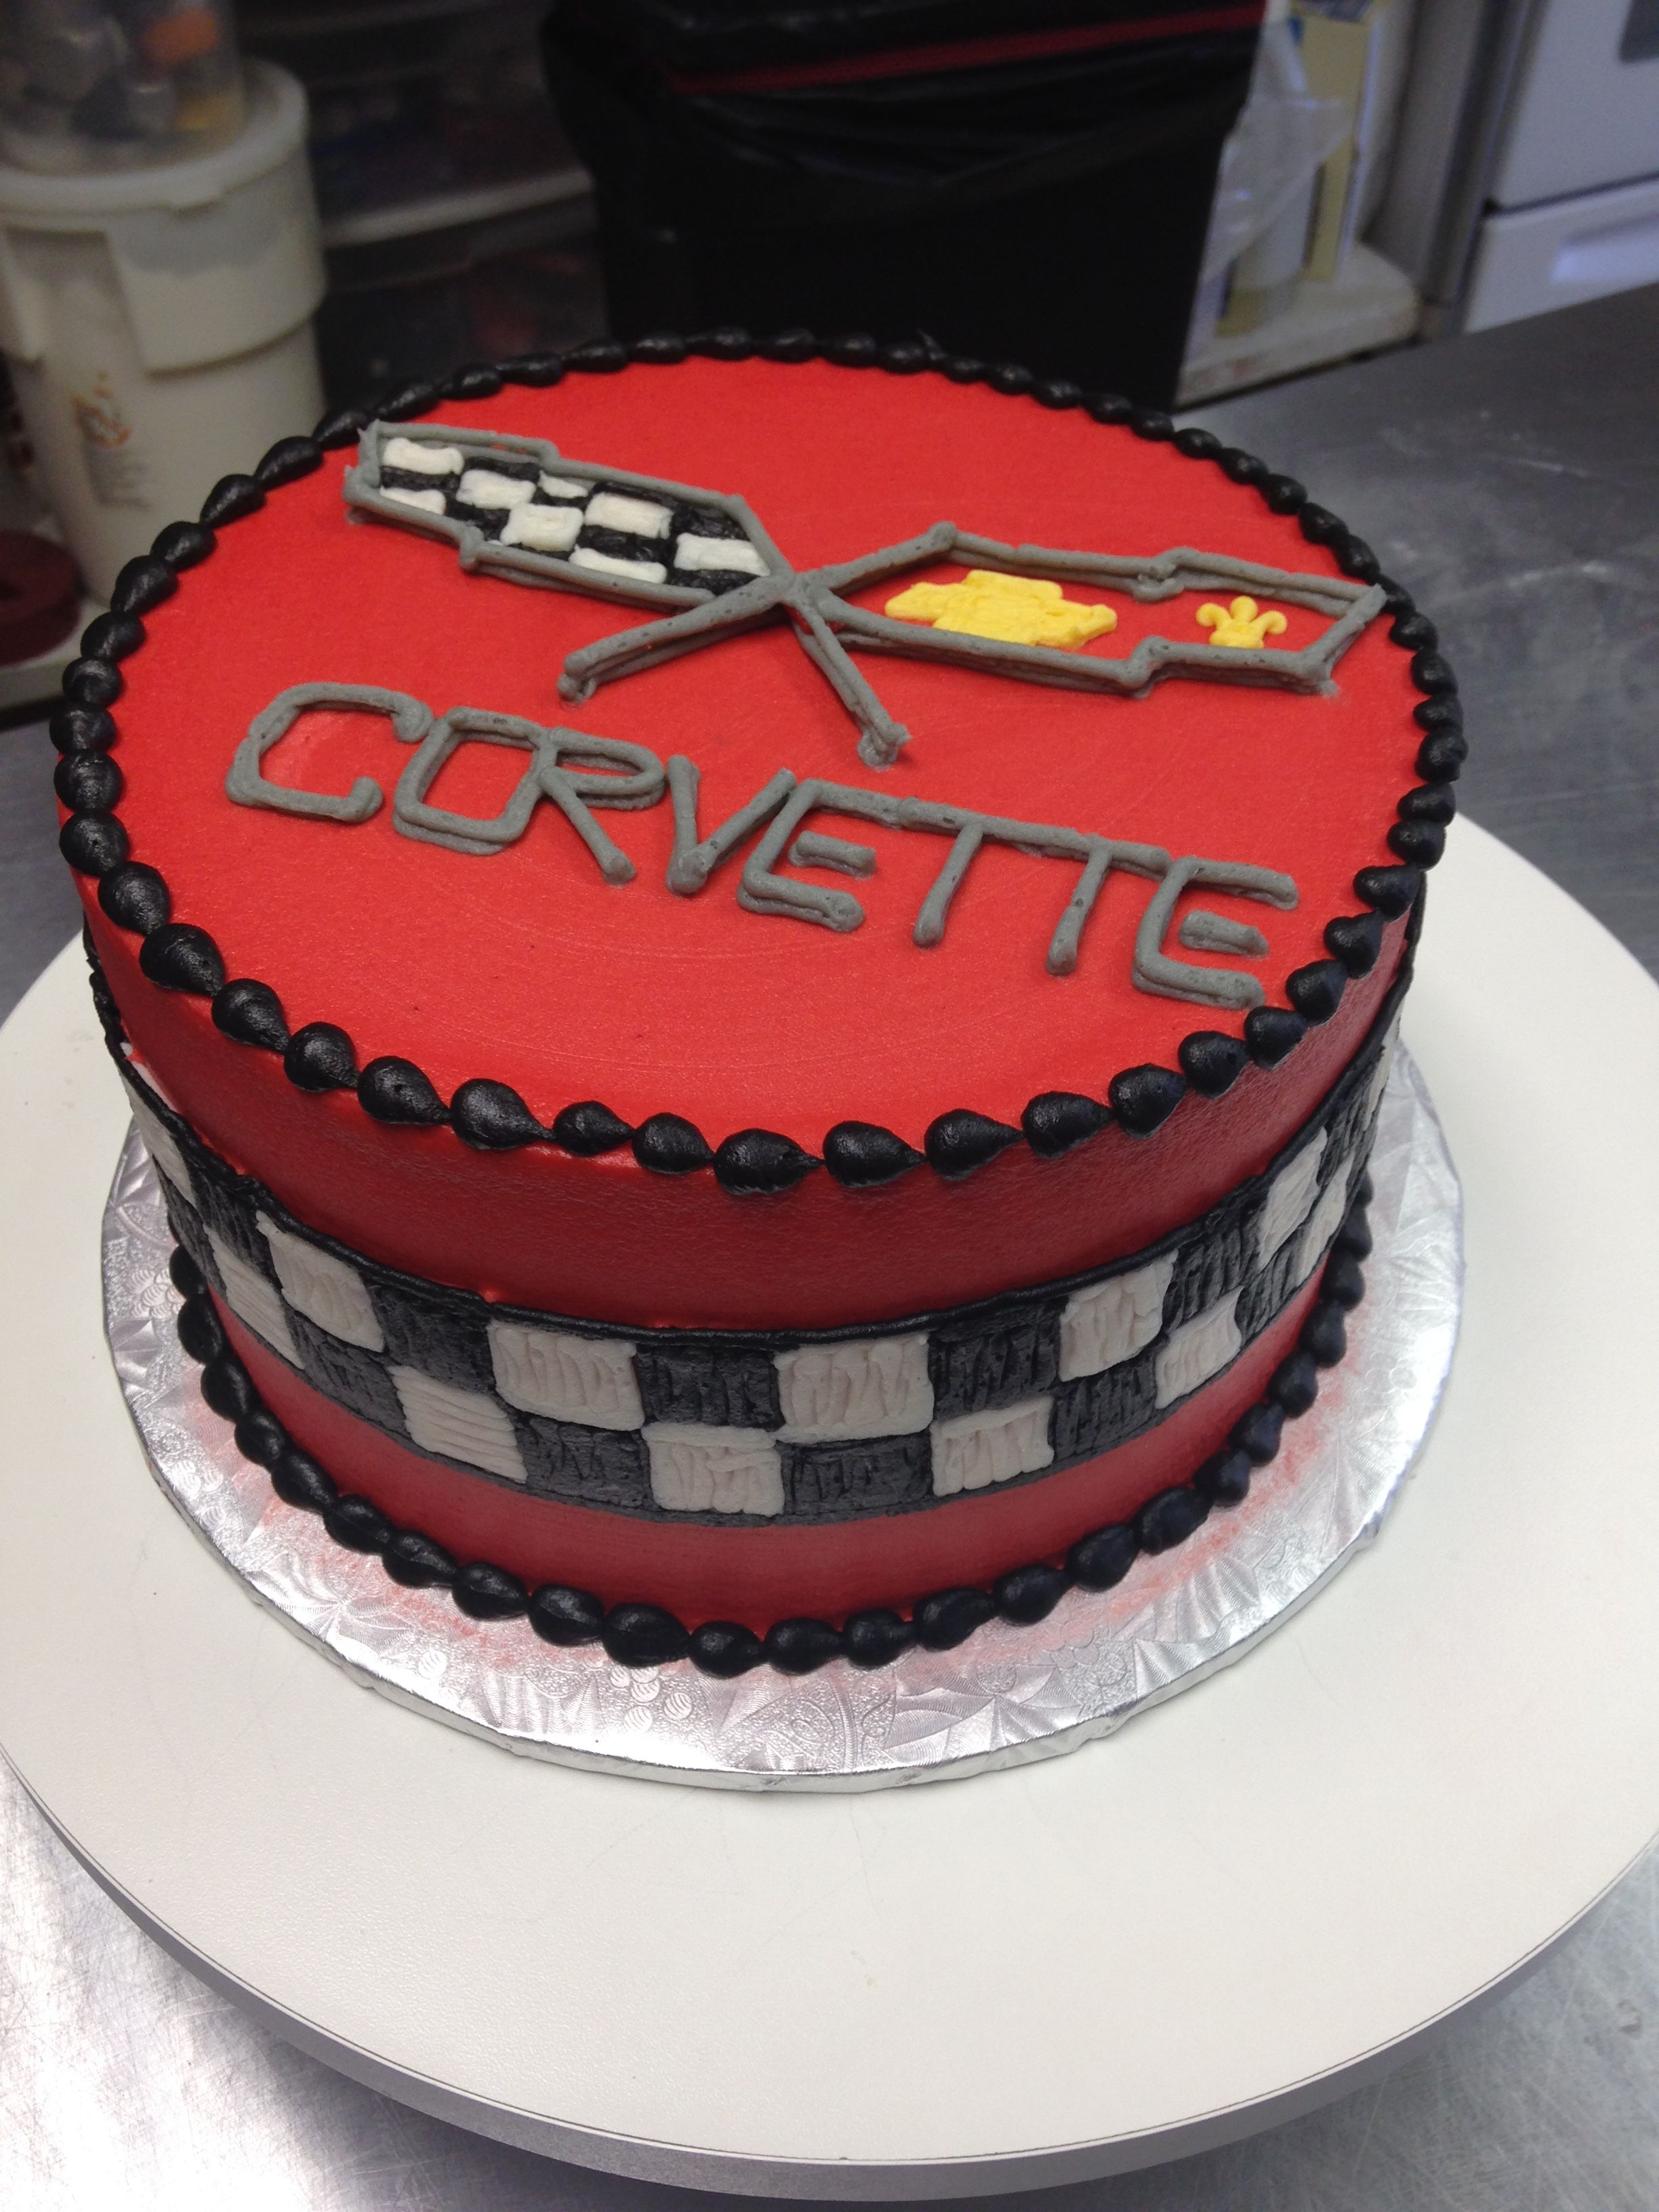 A Fun Cake For Any Corvette Enthusiast Decorated Entirely